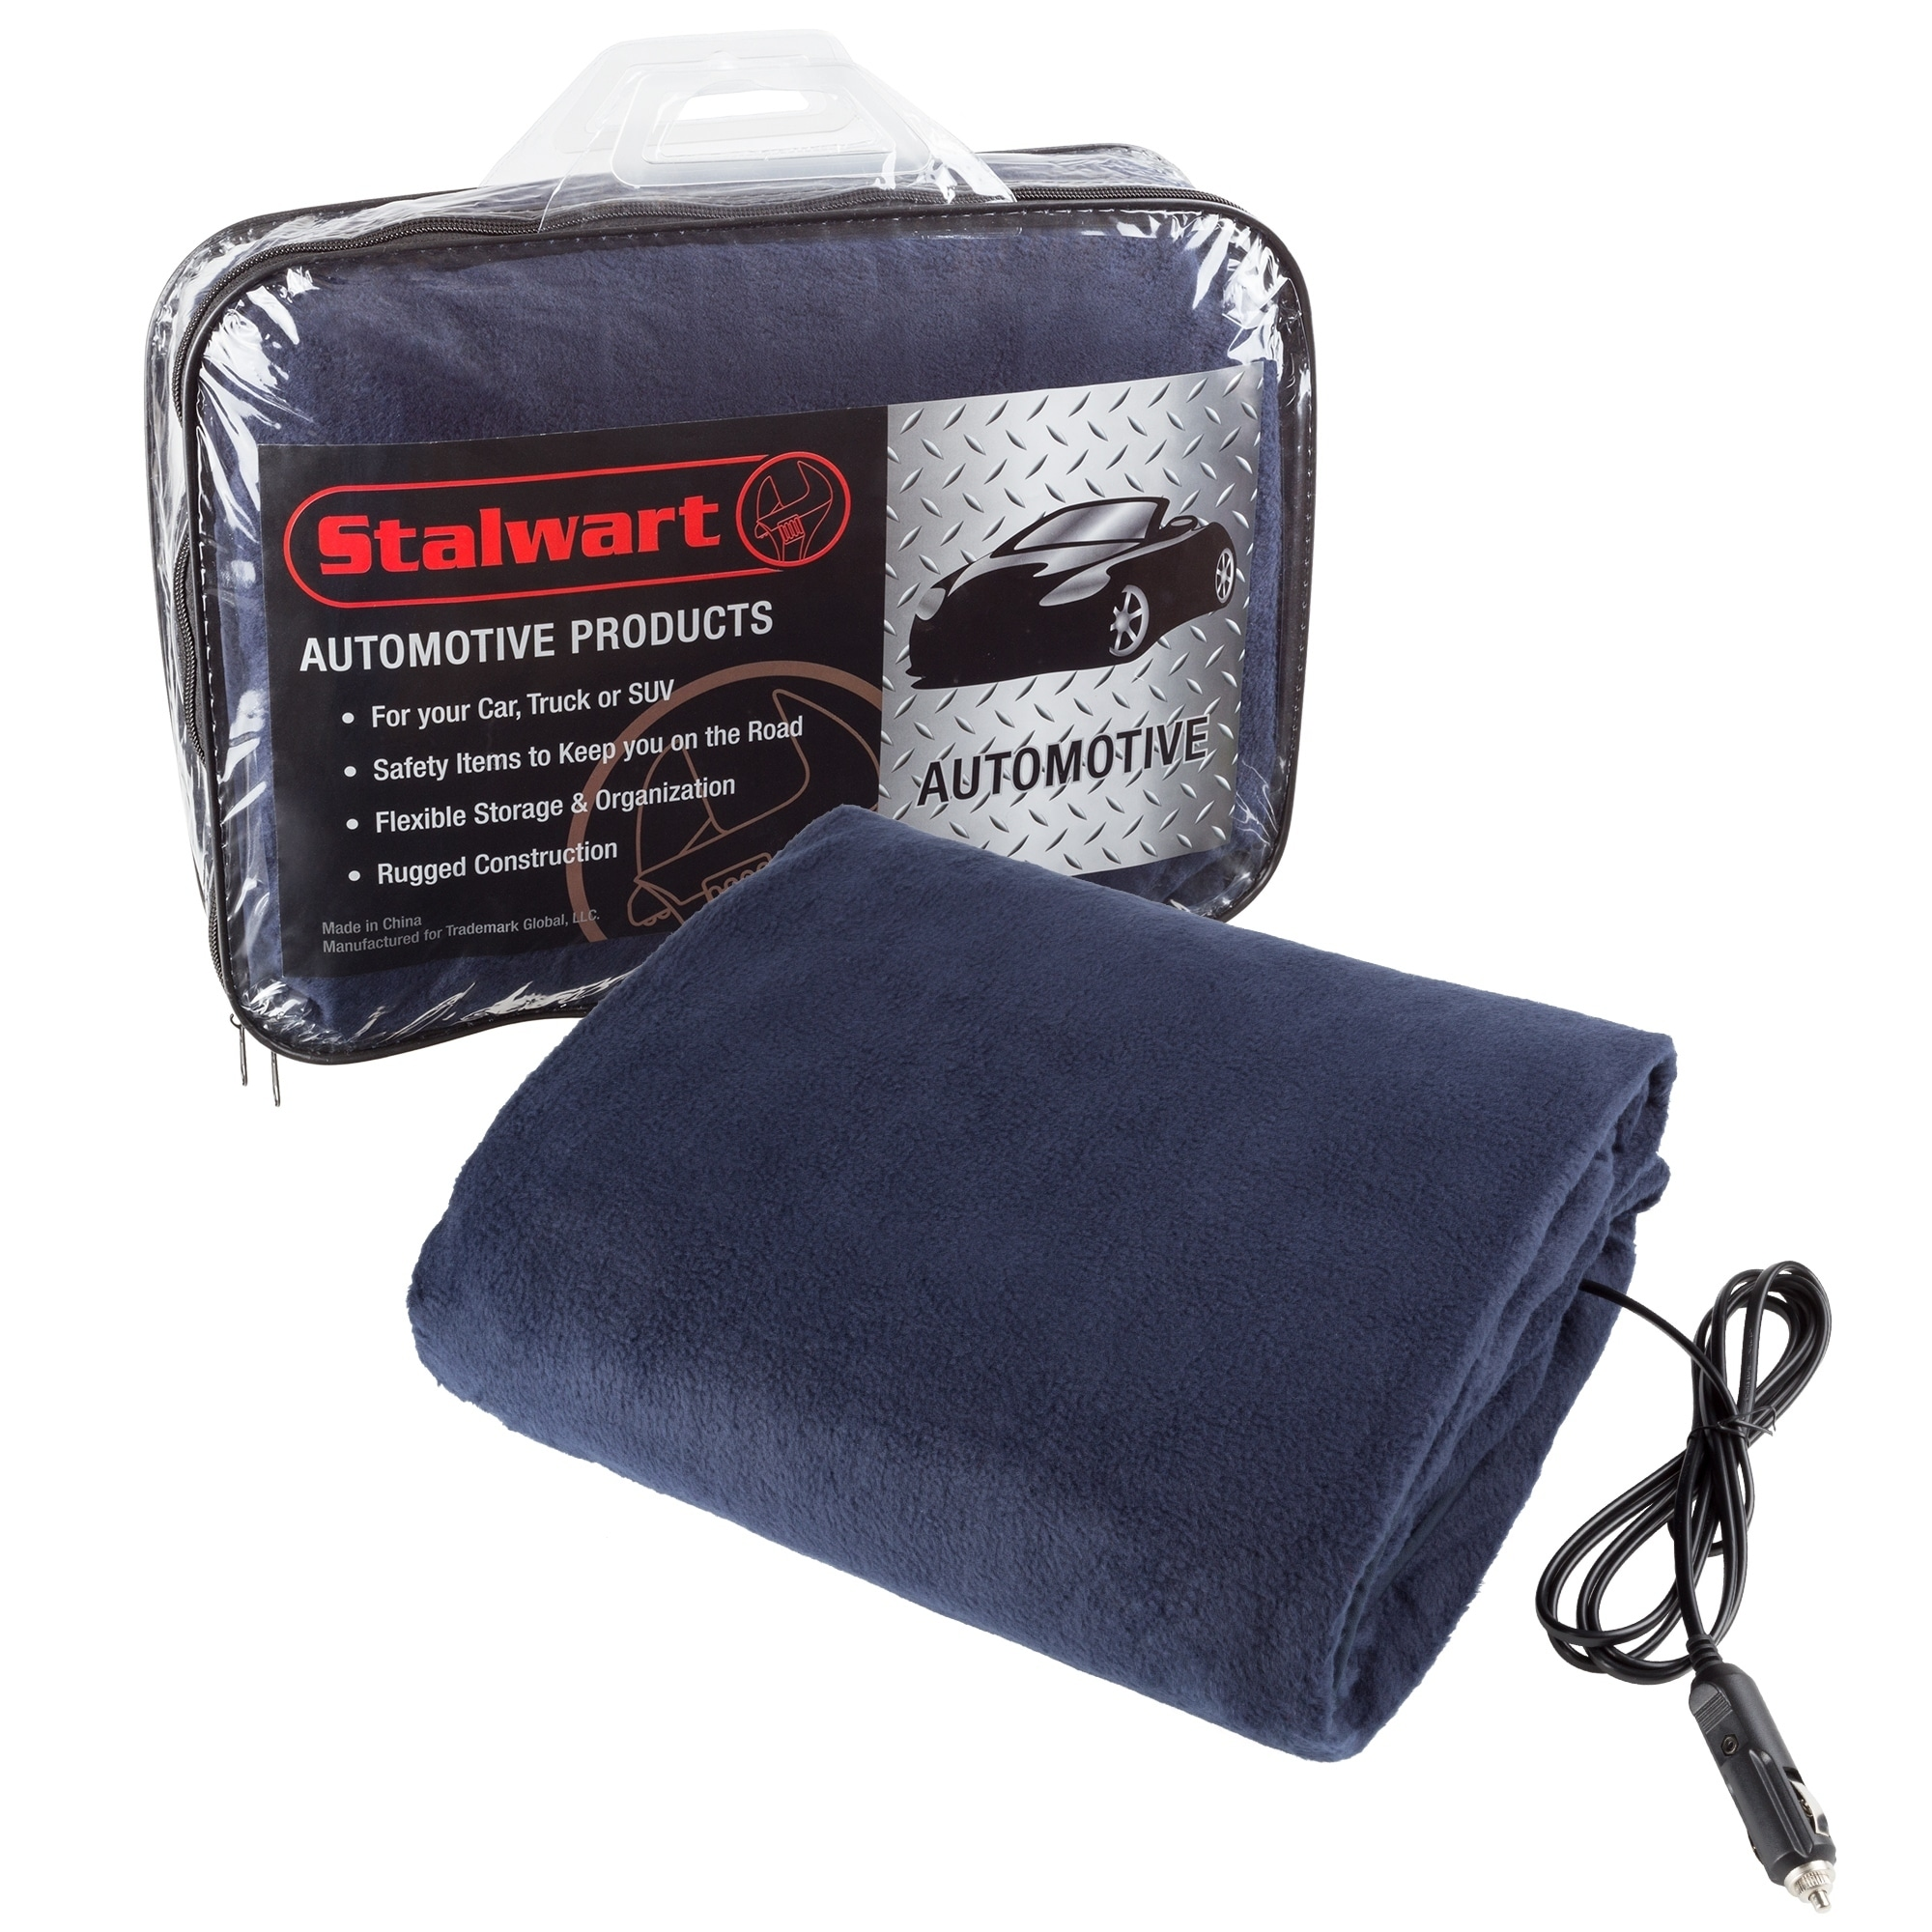 Roadpro Electric 12V Auto Blanket, Blue (Polyester)